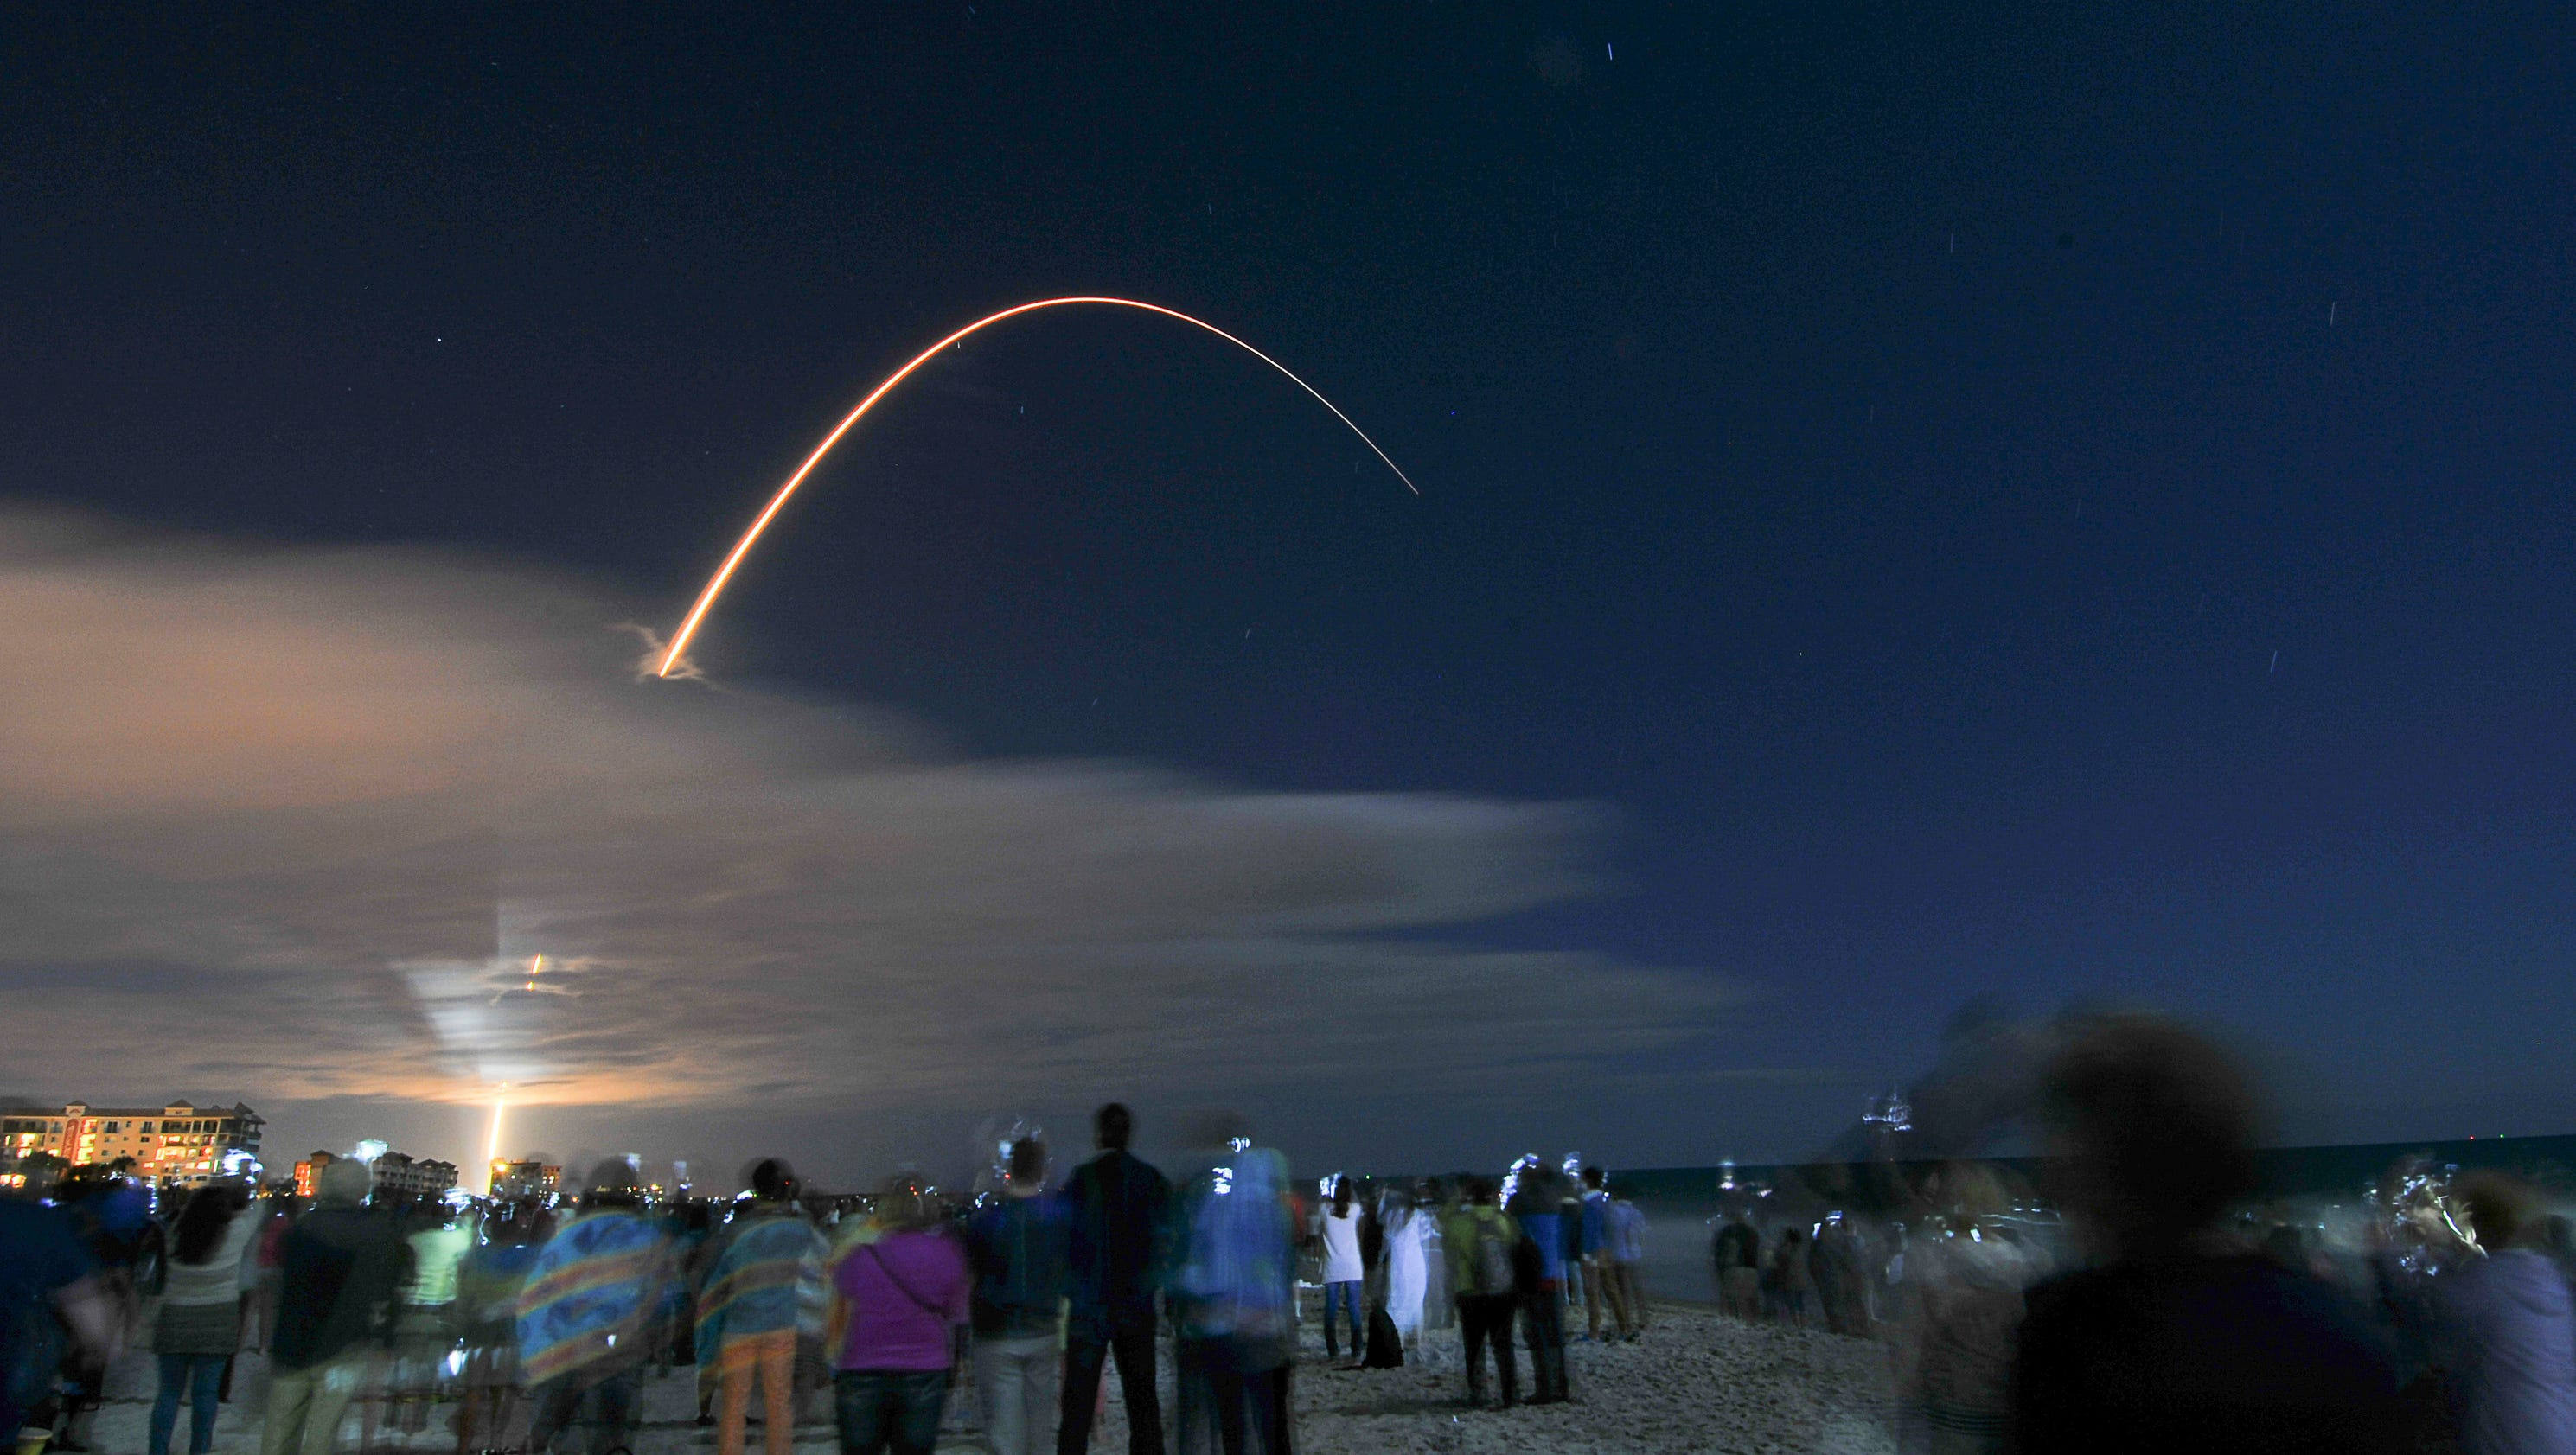 SpaceX Falcon 9 rocket launches from California, lands in